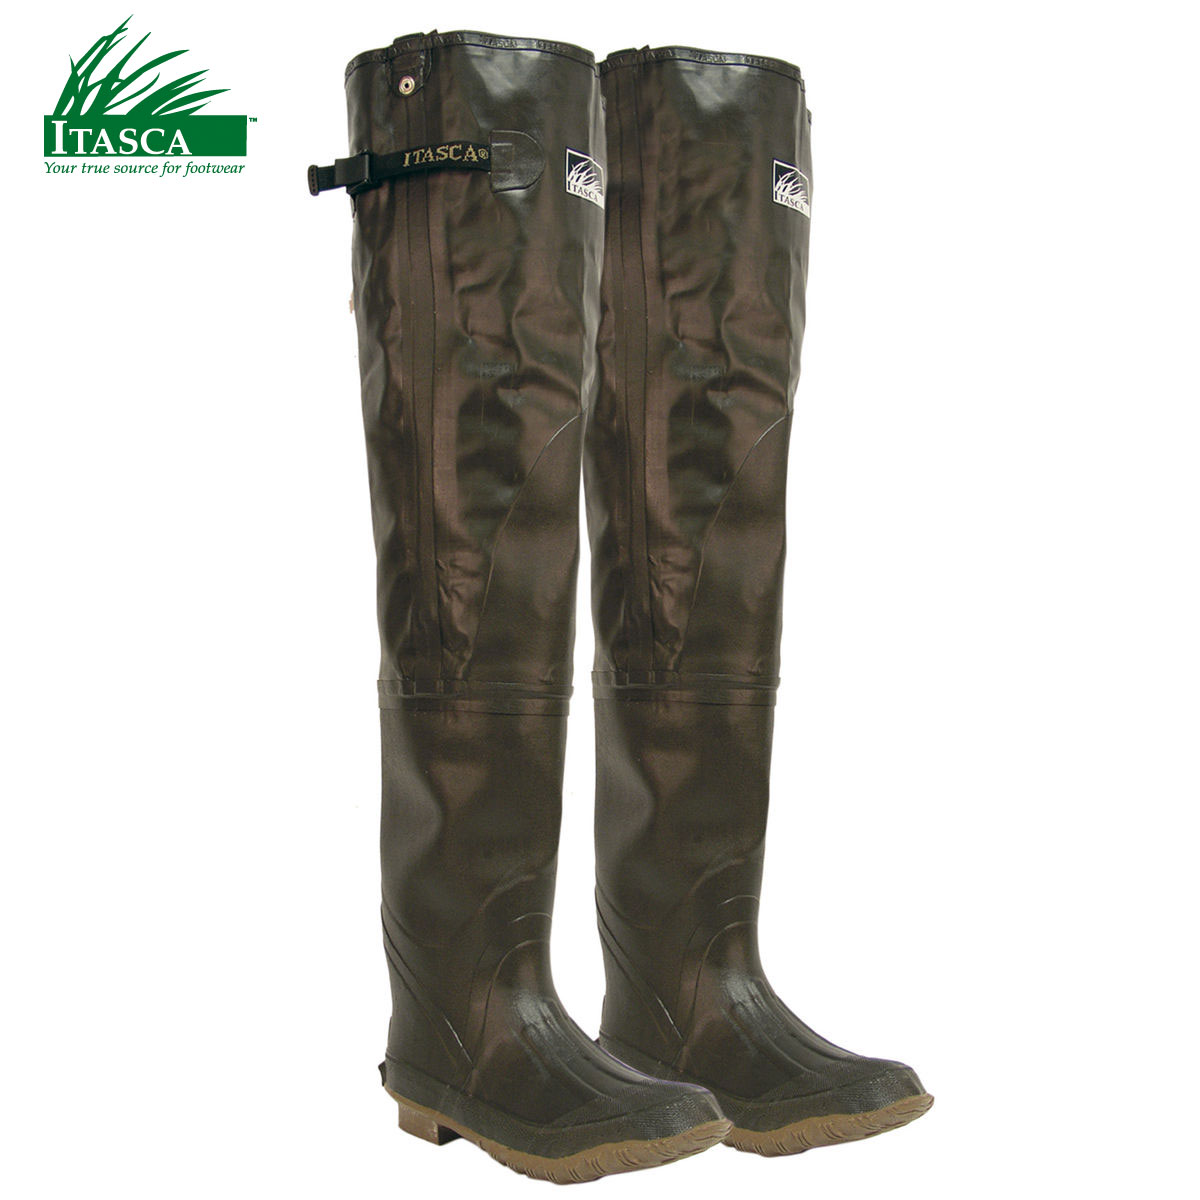 Itasca Rubber Men's Hip Waders (12)- Brown